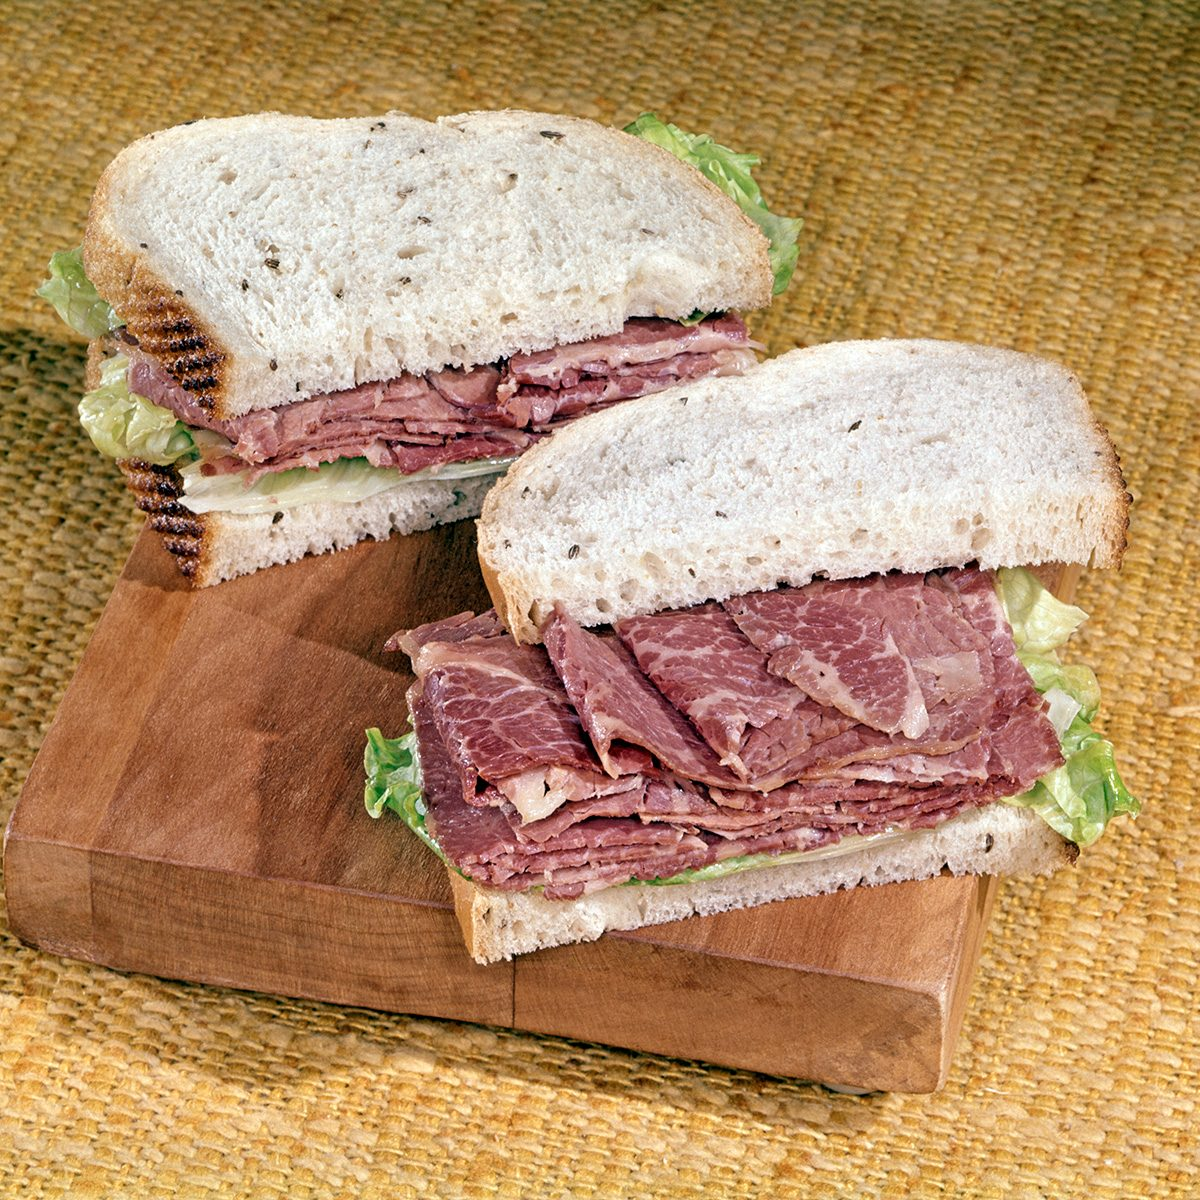 1960s CORNED BEEF SANDWICH ON RYE WITH LETTUCE (Photo by L. Fritz/ClassicStock/Getty Images)